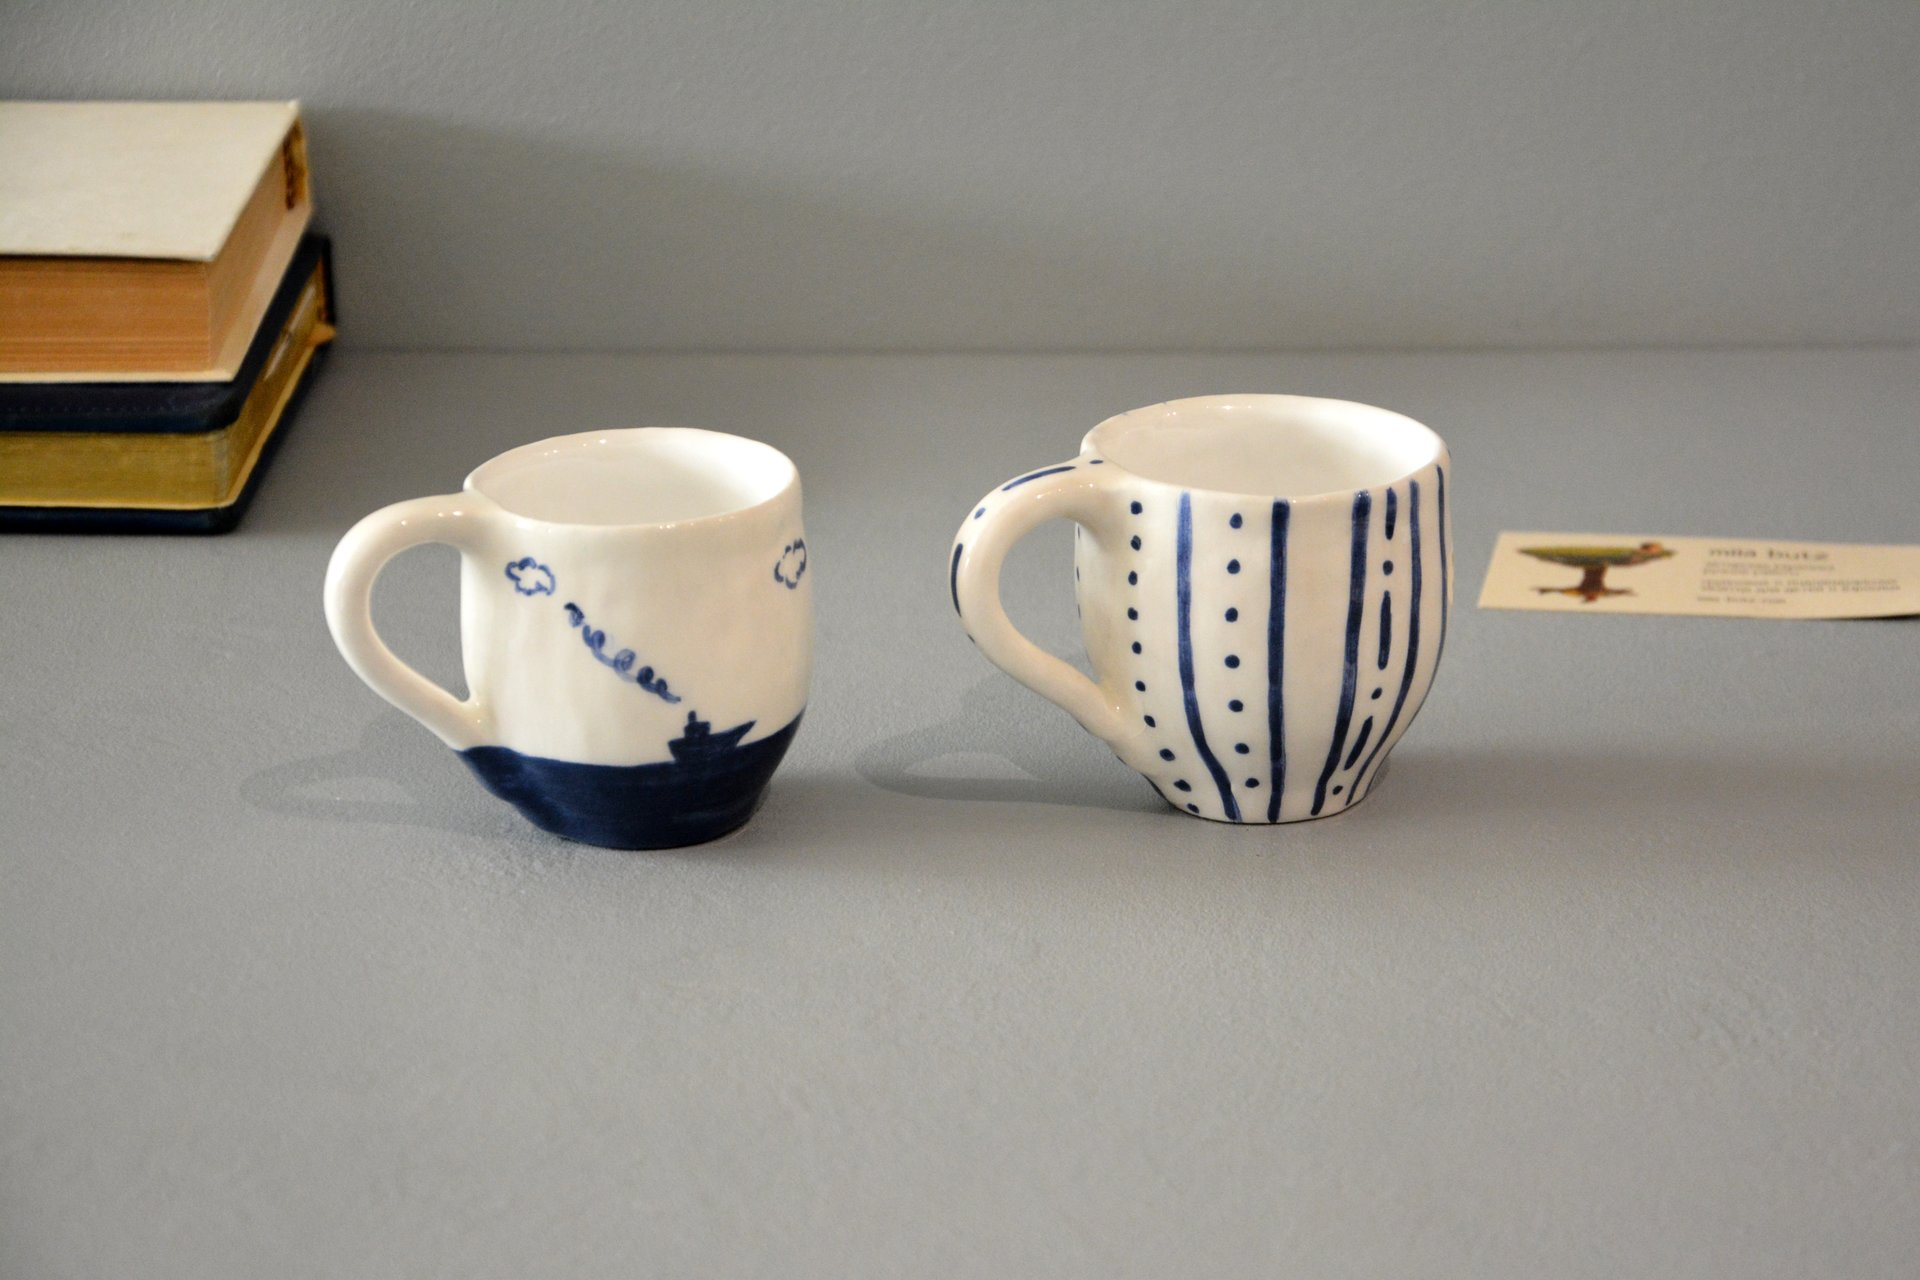 Pair of white cups for espresso, 100 ml and 150 ml, photo 4 of 5.